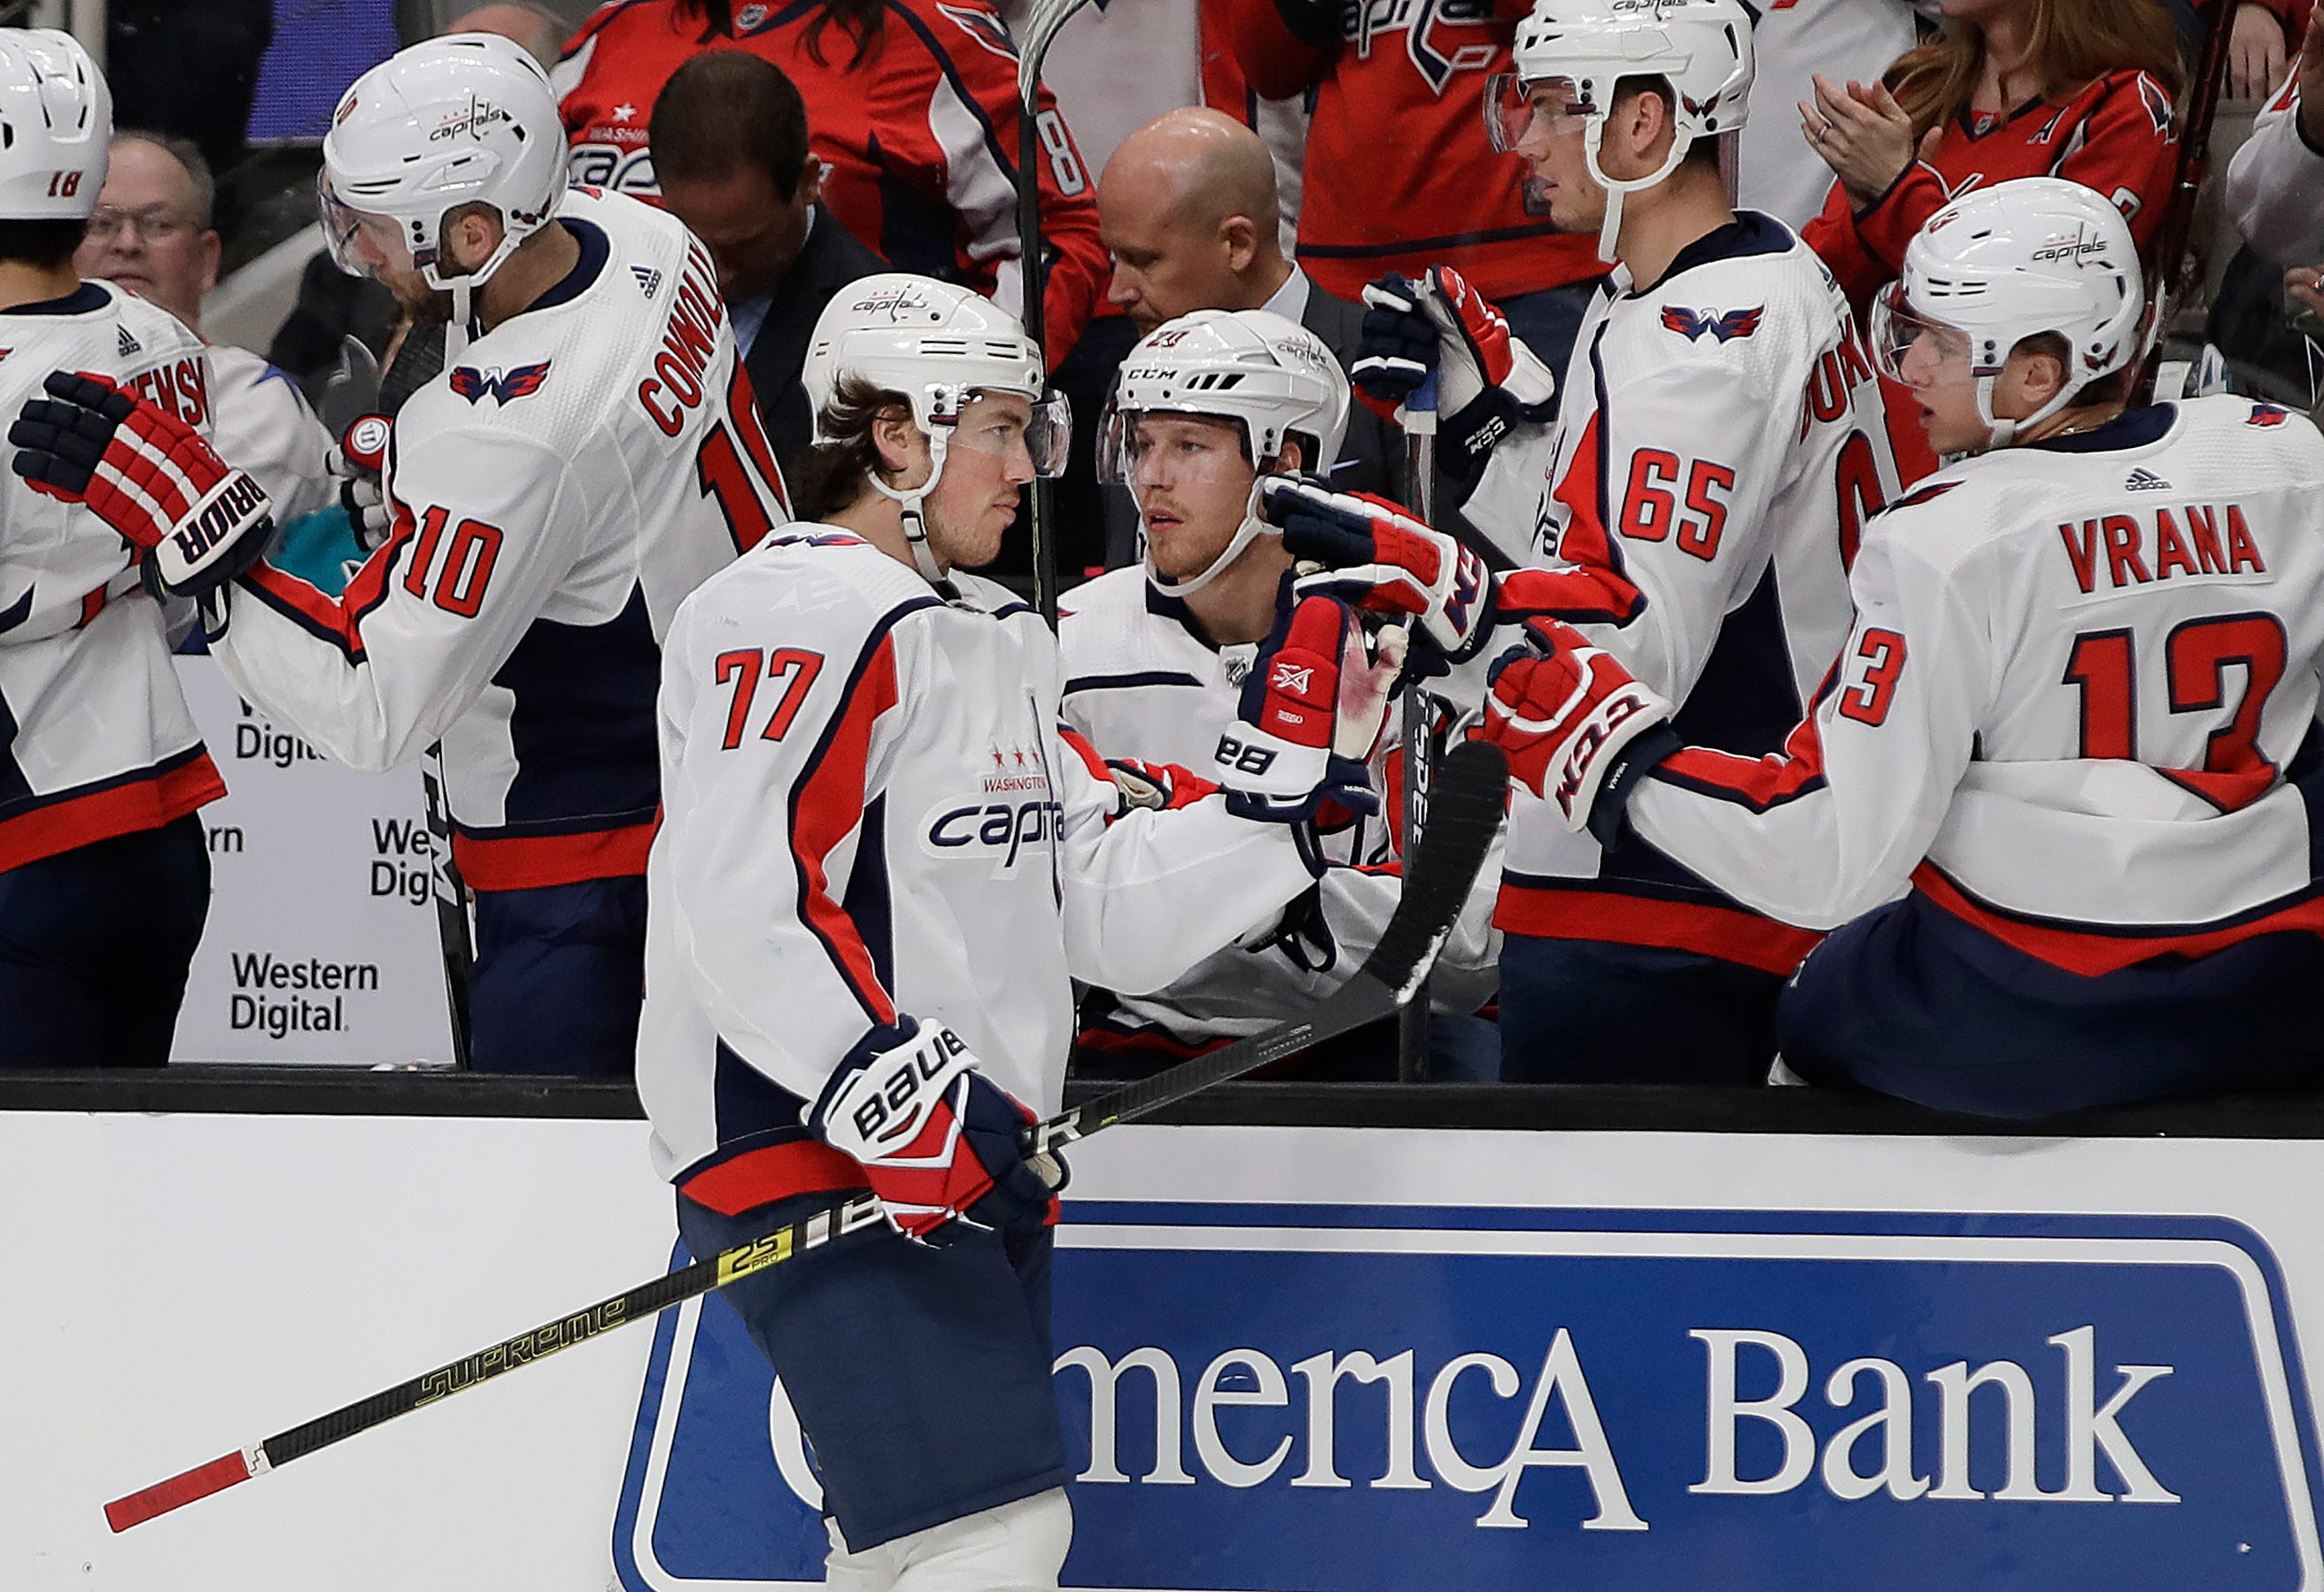 Ovechkin, Oshie lift Capitals over Sharks 5-1